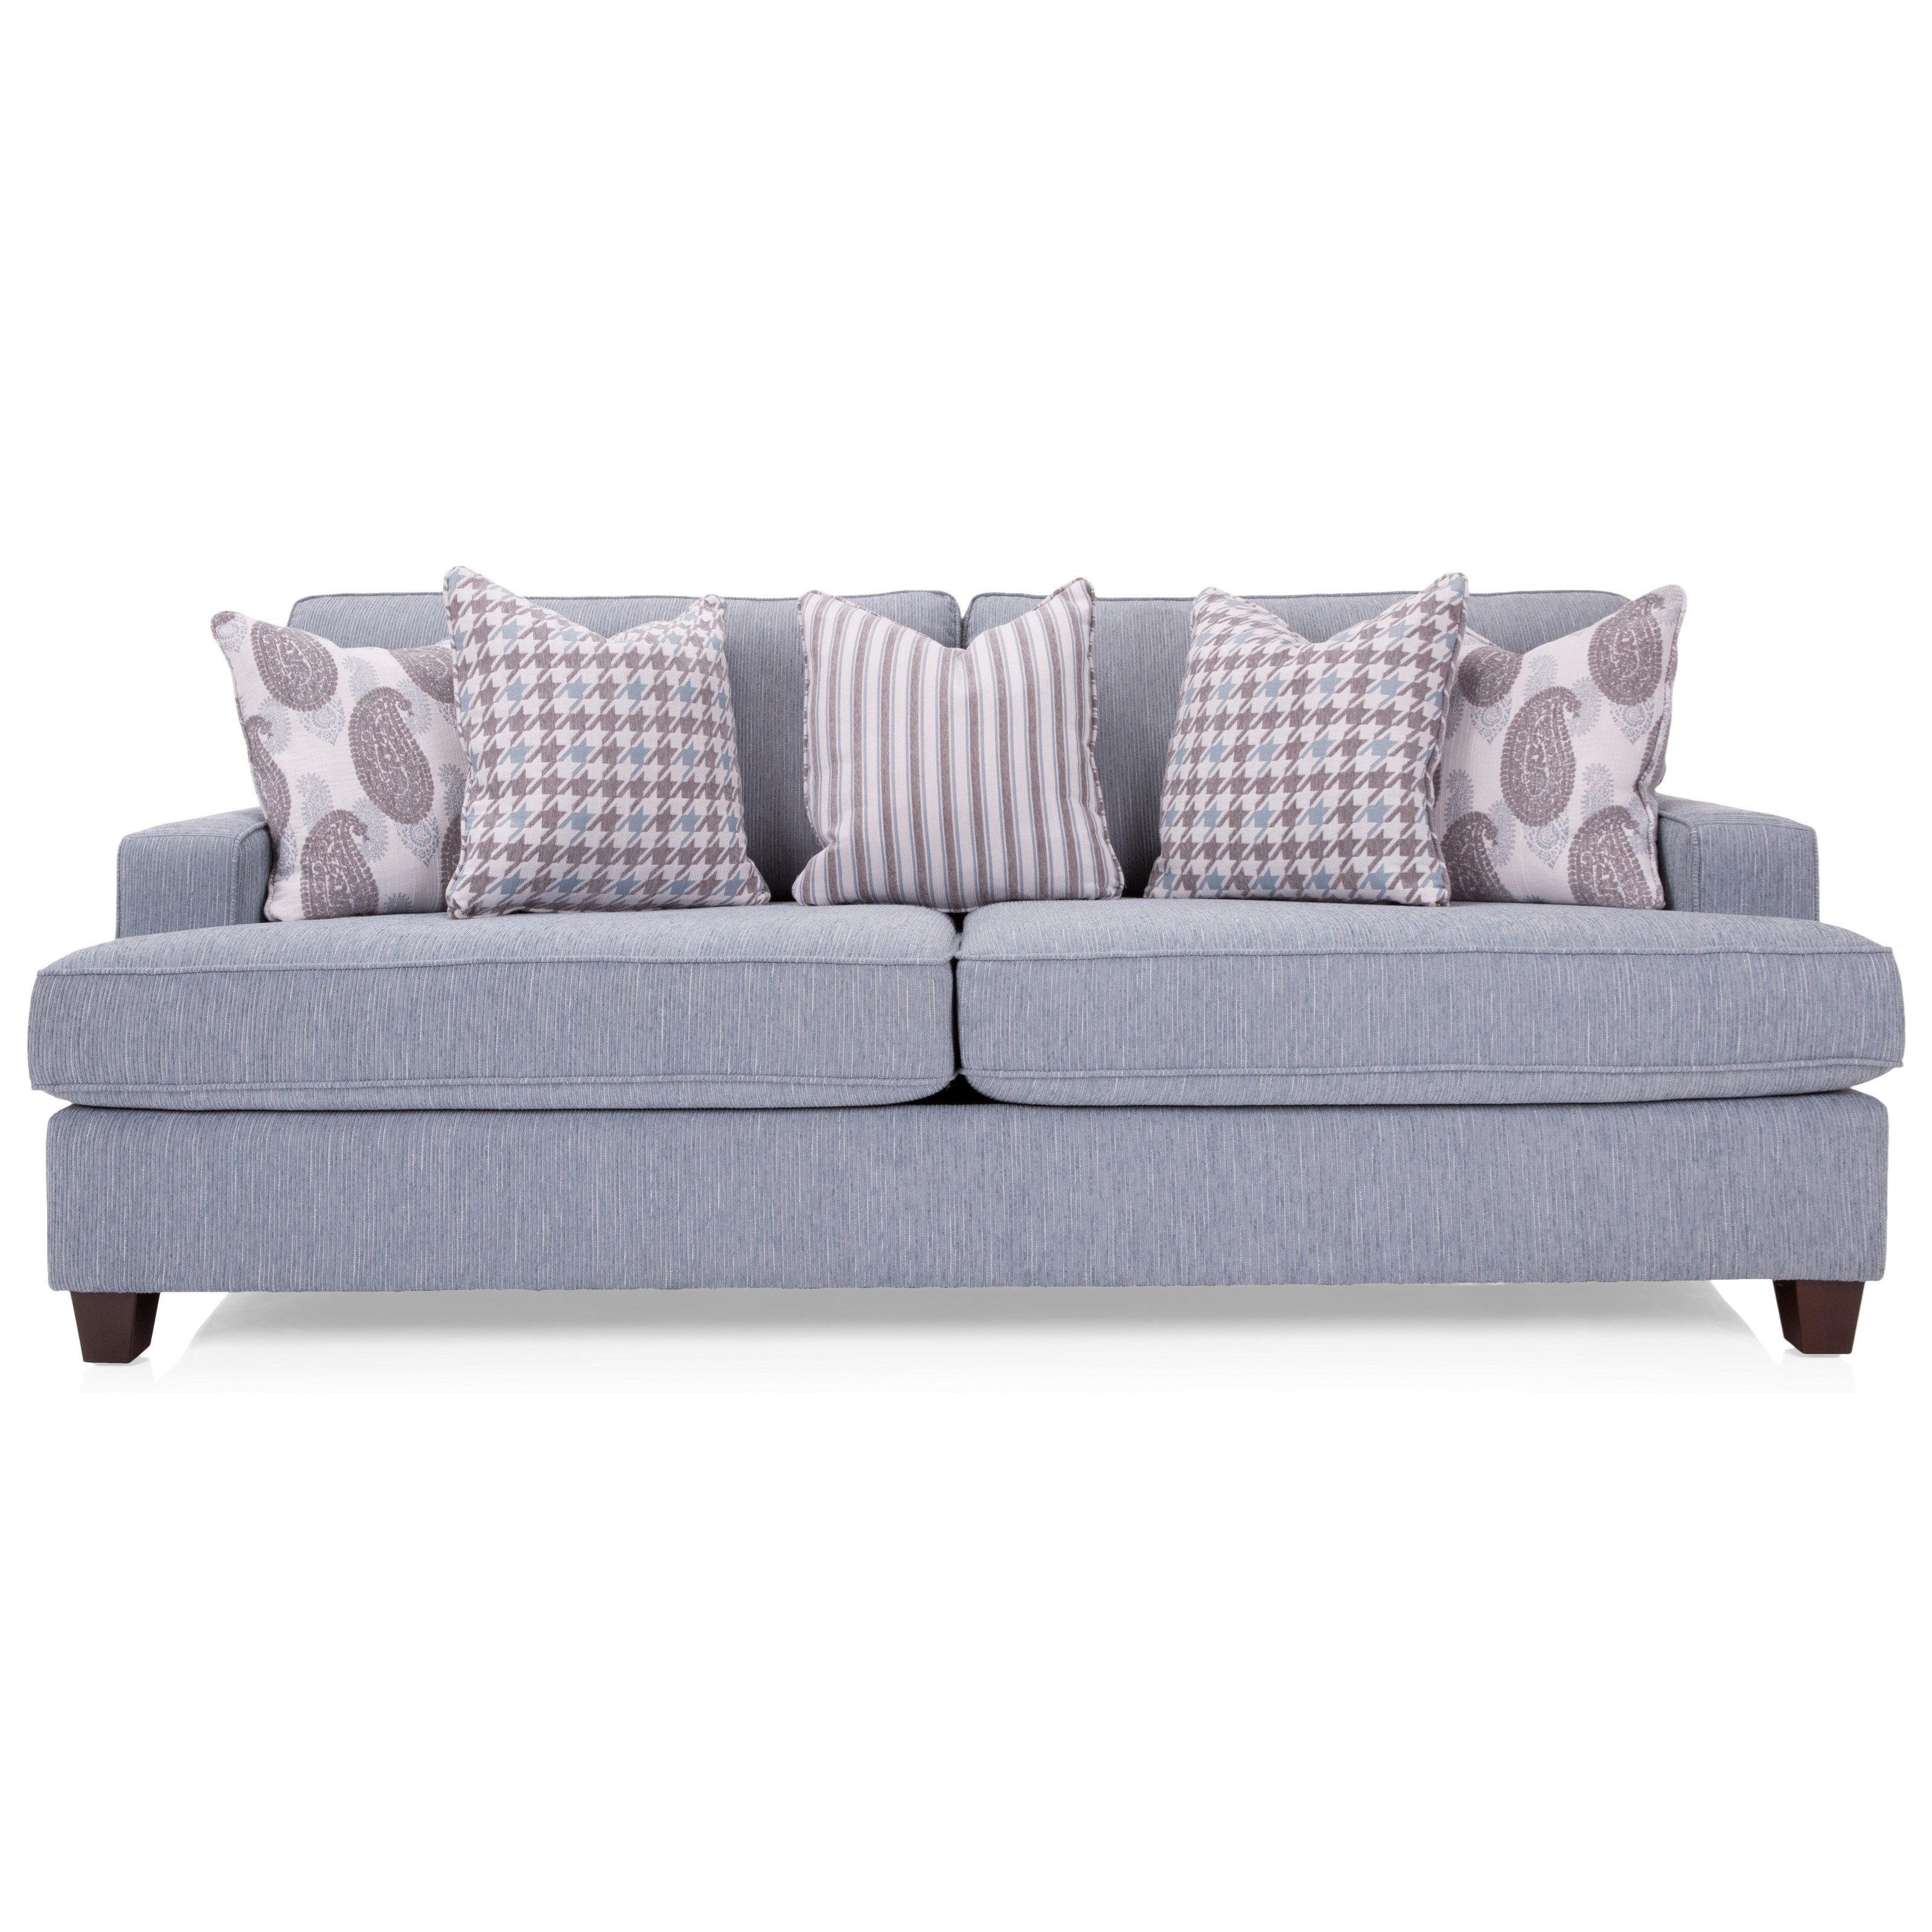 2052 Sofa by Decor-Rest at Rooms for Less